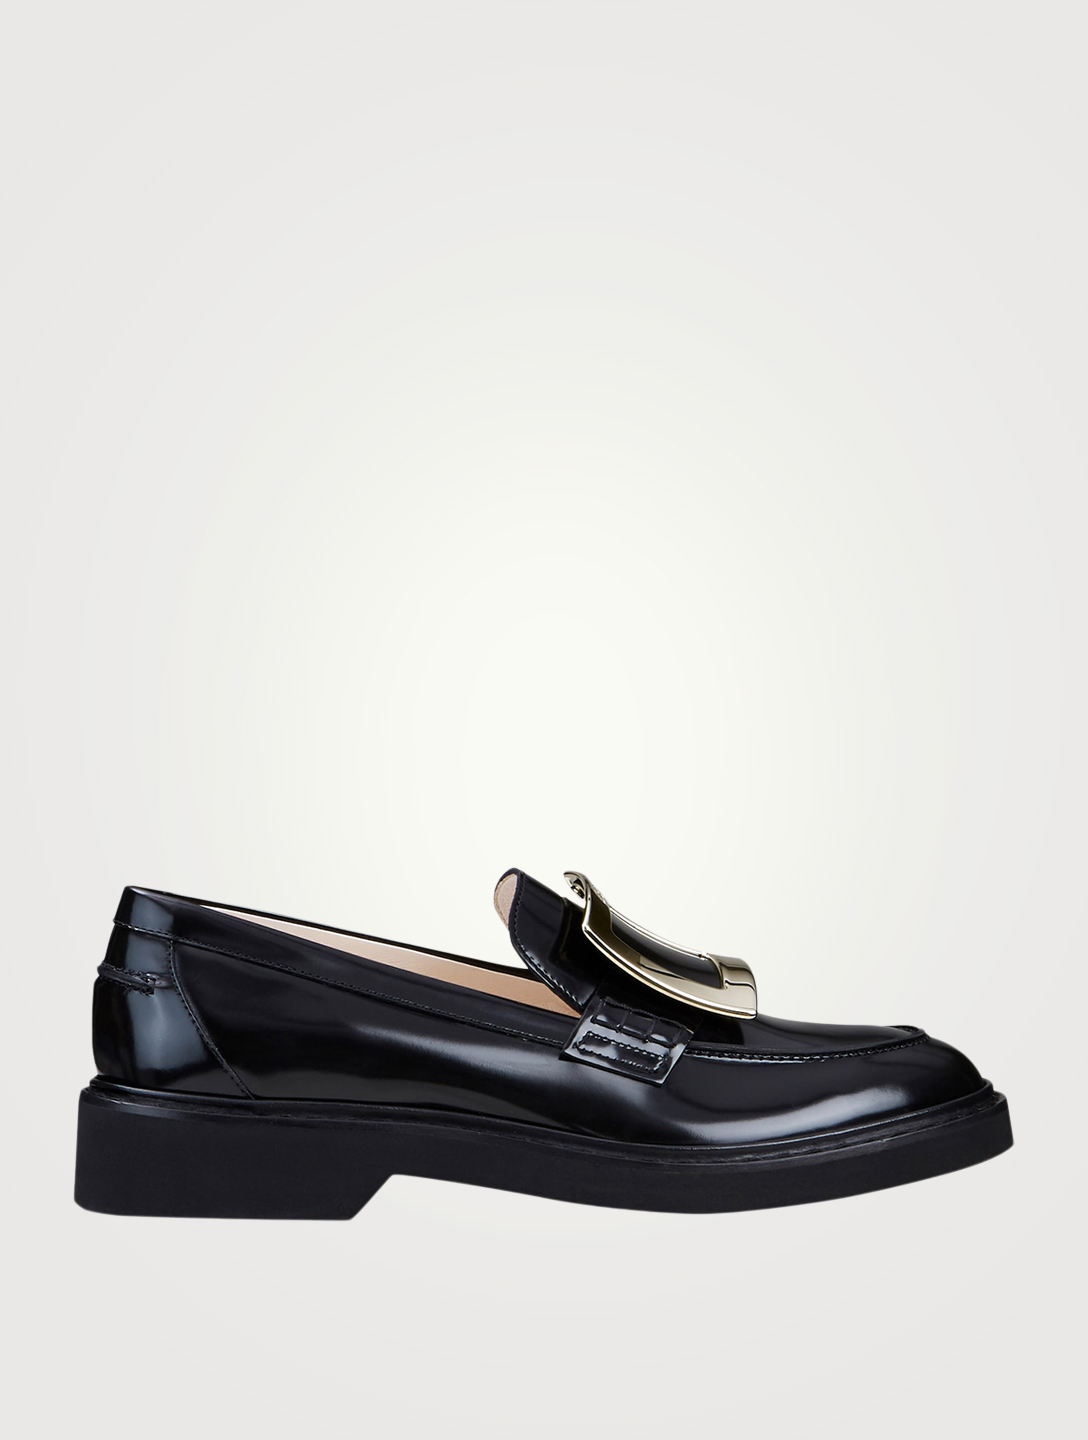 ROGER VIVIER Viv' Rangers Leather Loafers Women's Black